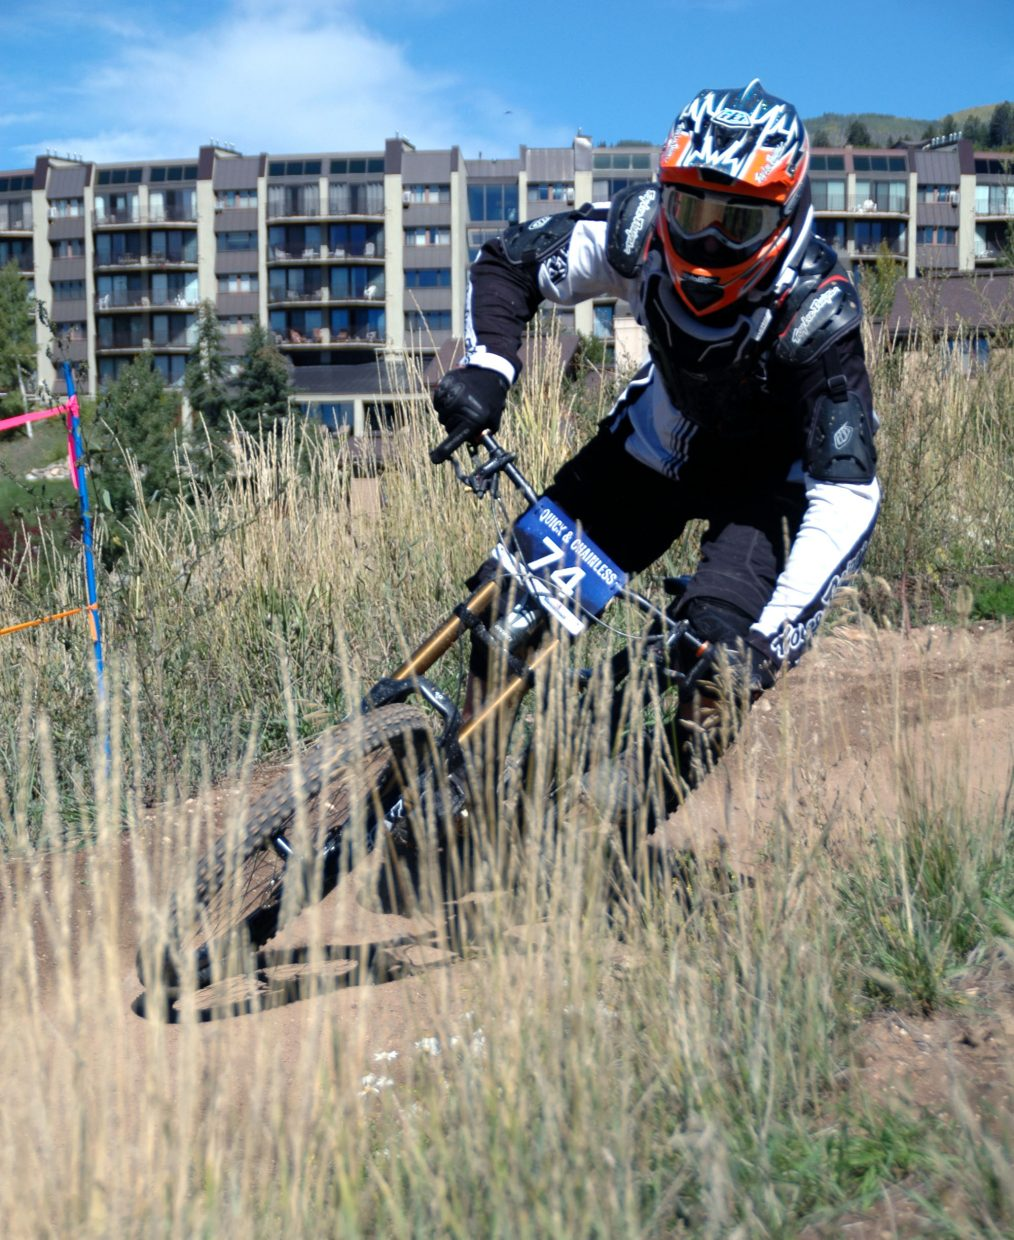 Grant Ingram enters one of the final turns during Sunday's Quick and Chainless Downhill Mountain Bike Race. Ingram finished 11th in the men's elite class in a time of 14:32.19.